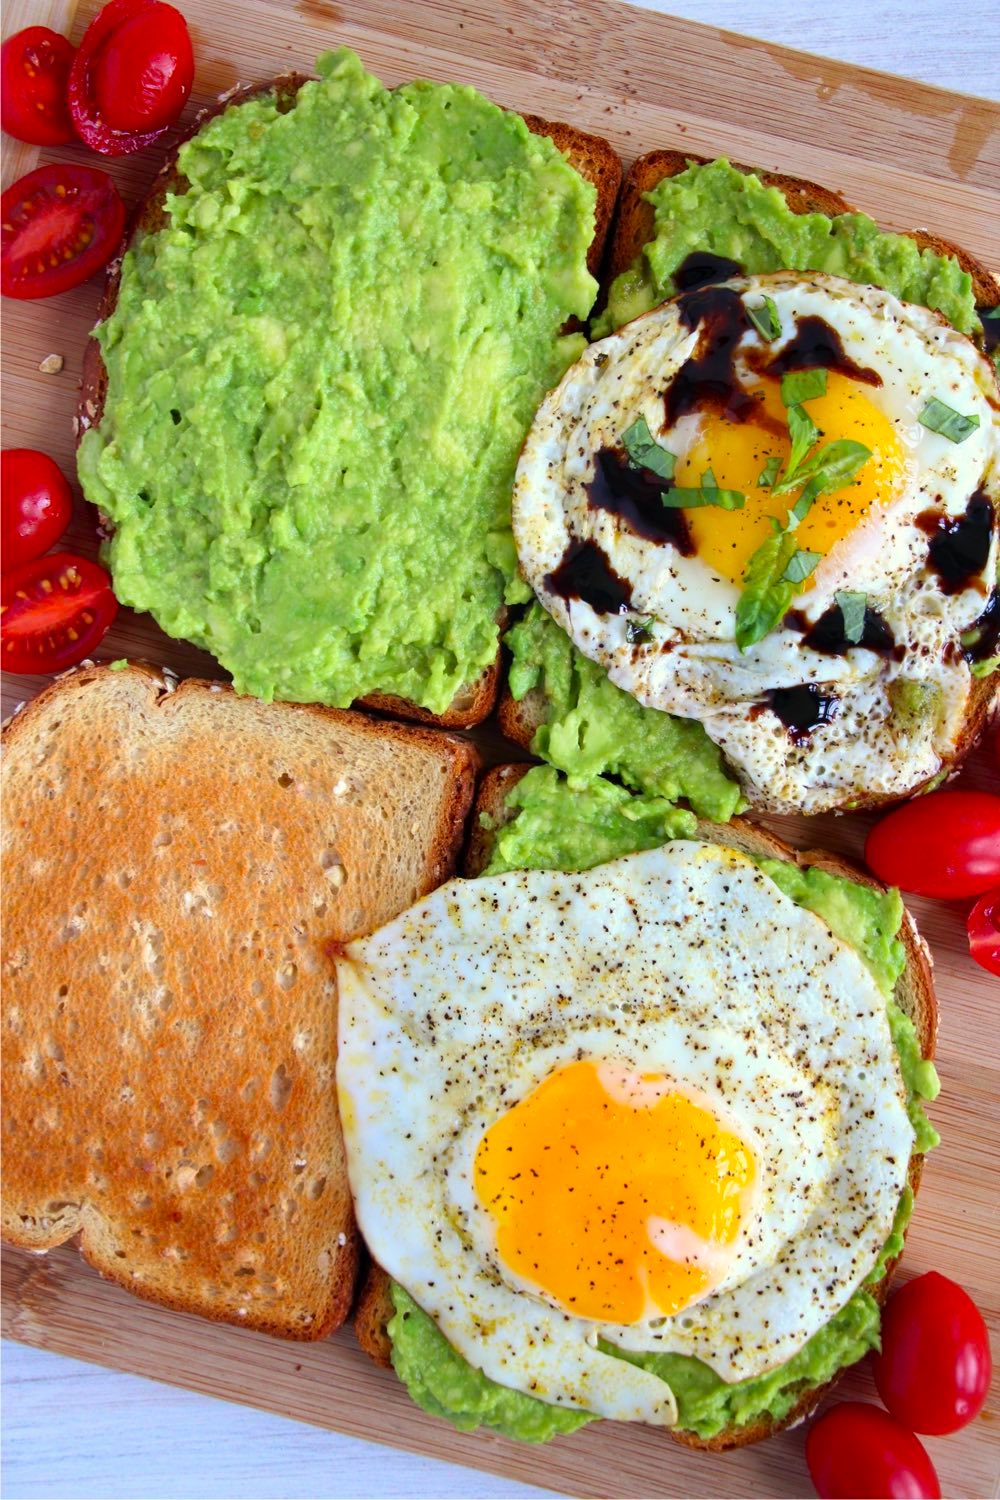 Assembling avocado toast with eggs